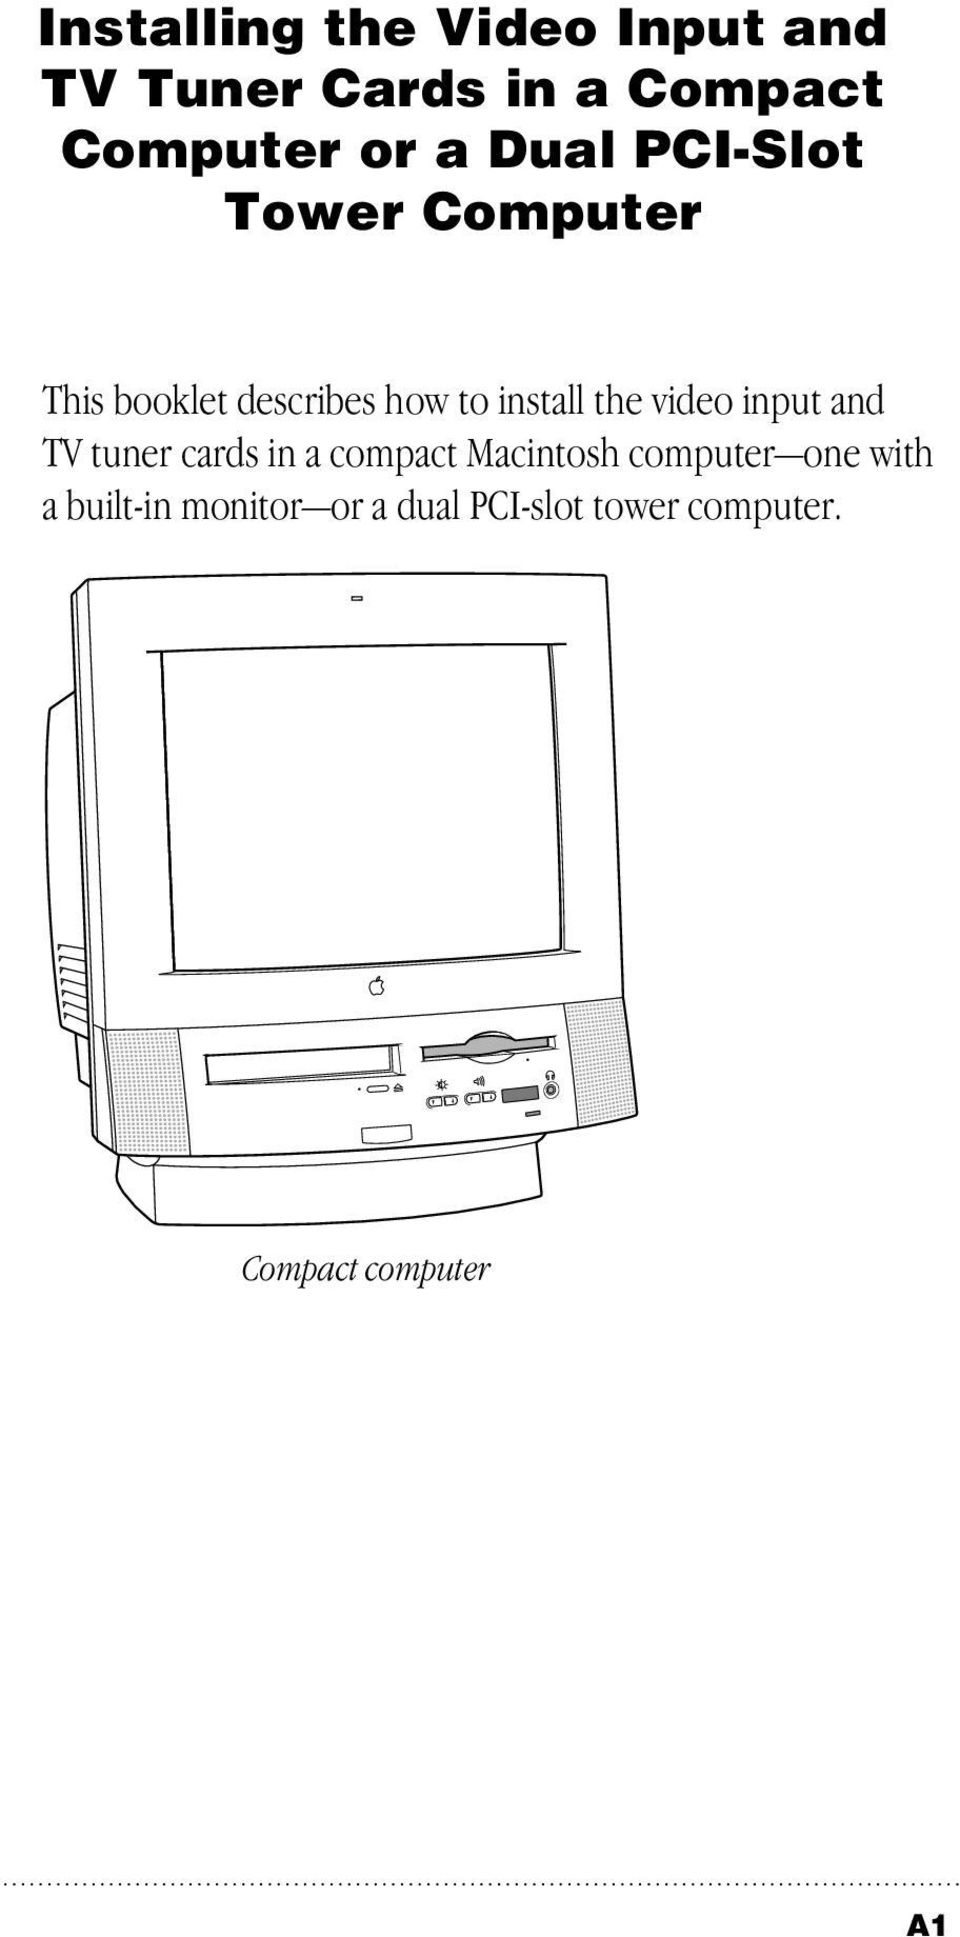 video input and TV tuner cards in a compact Macintosh computer one with